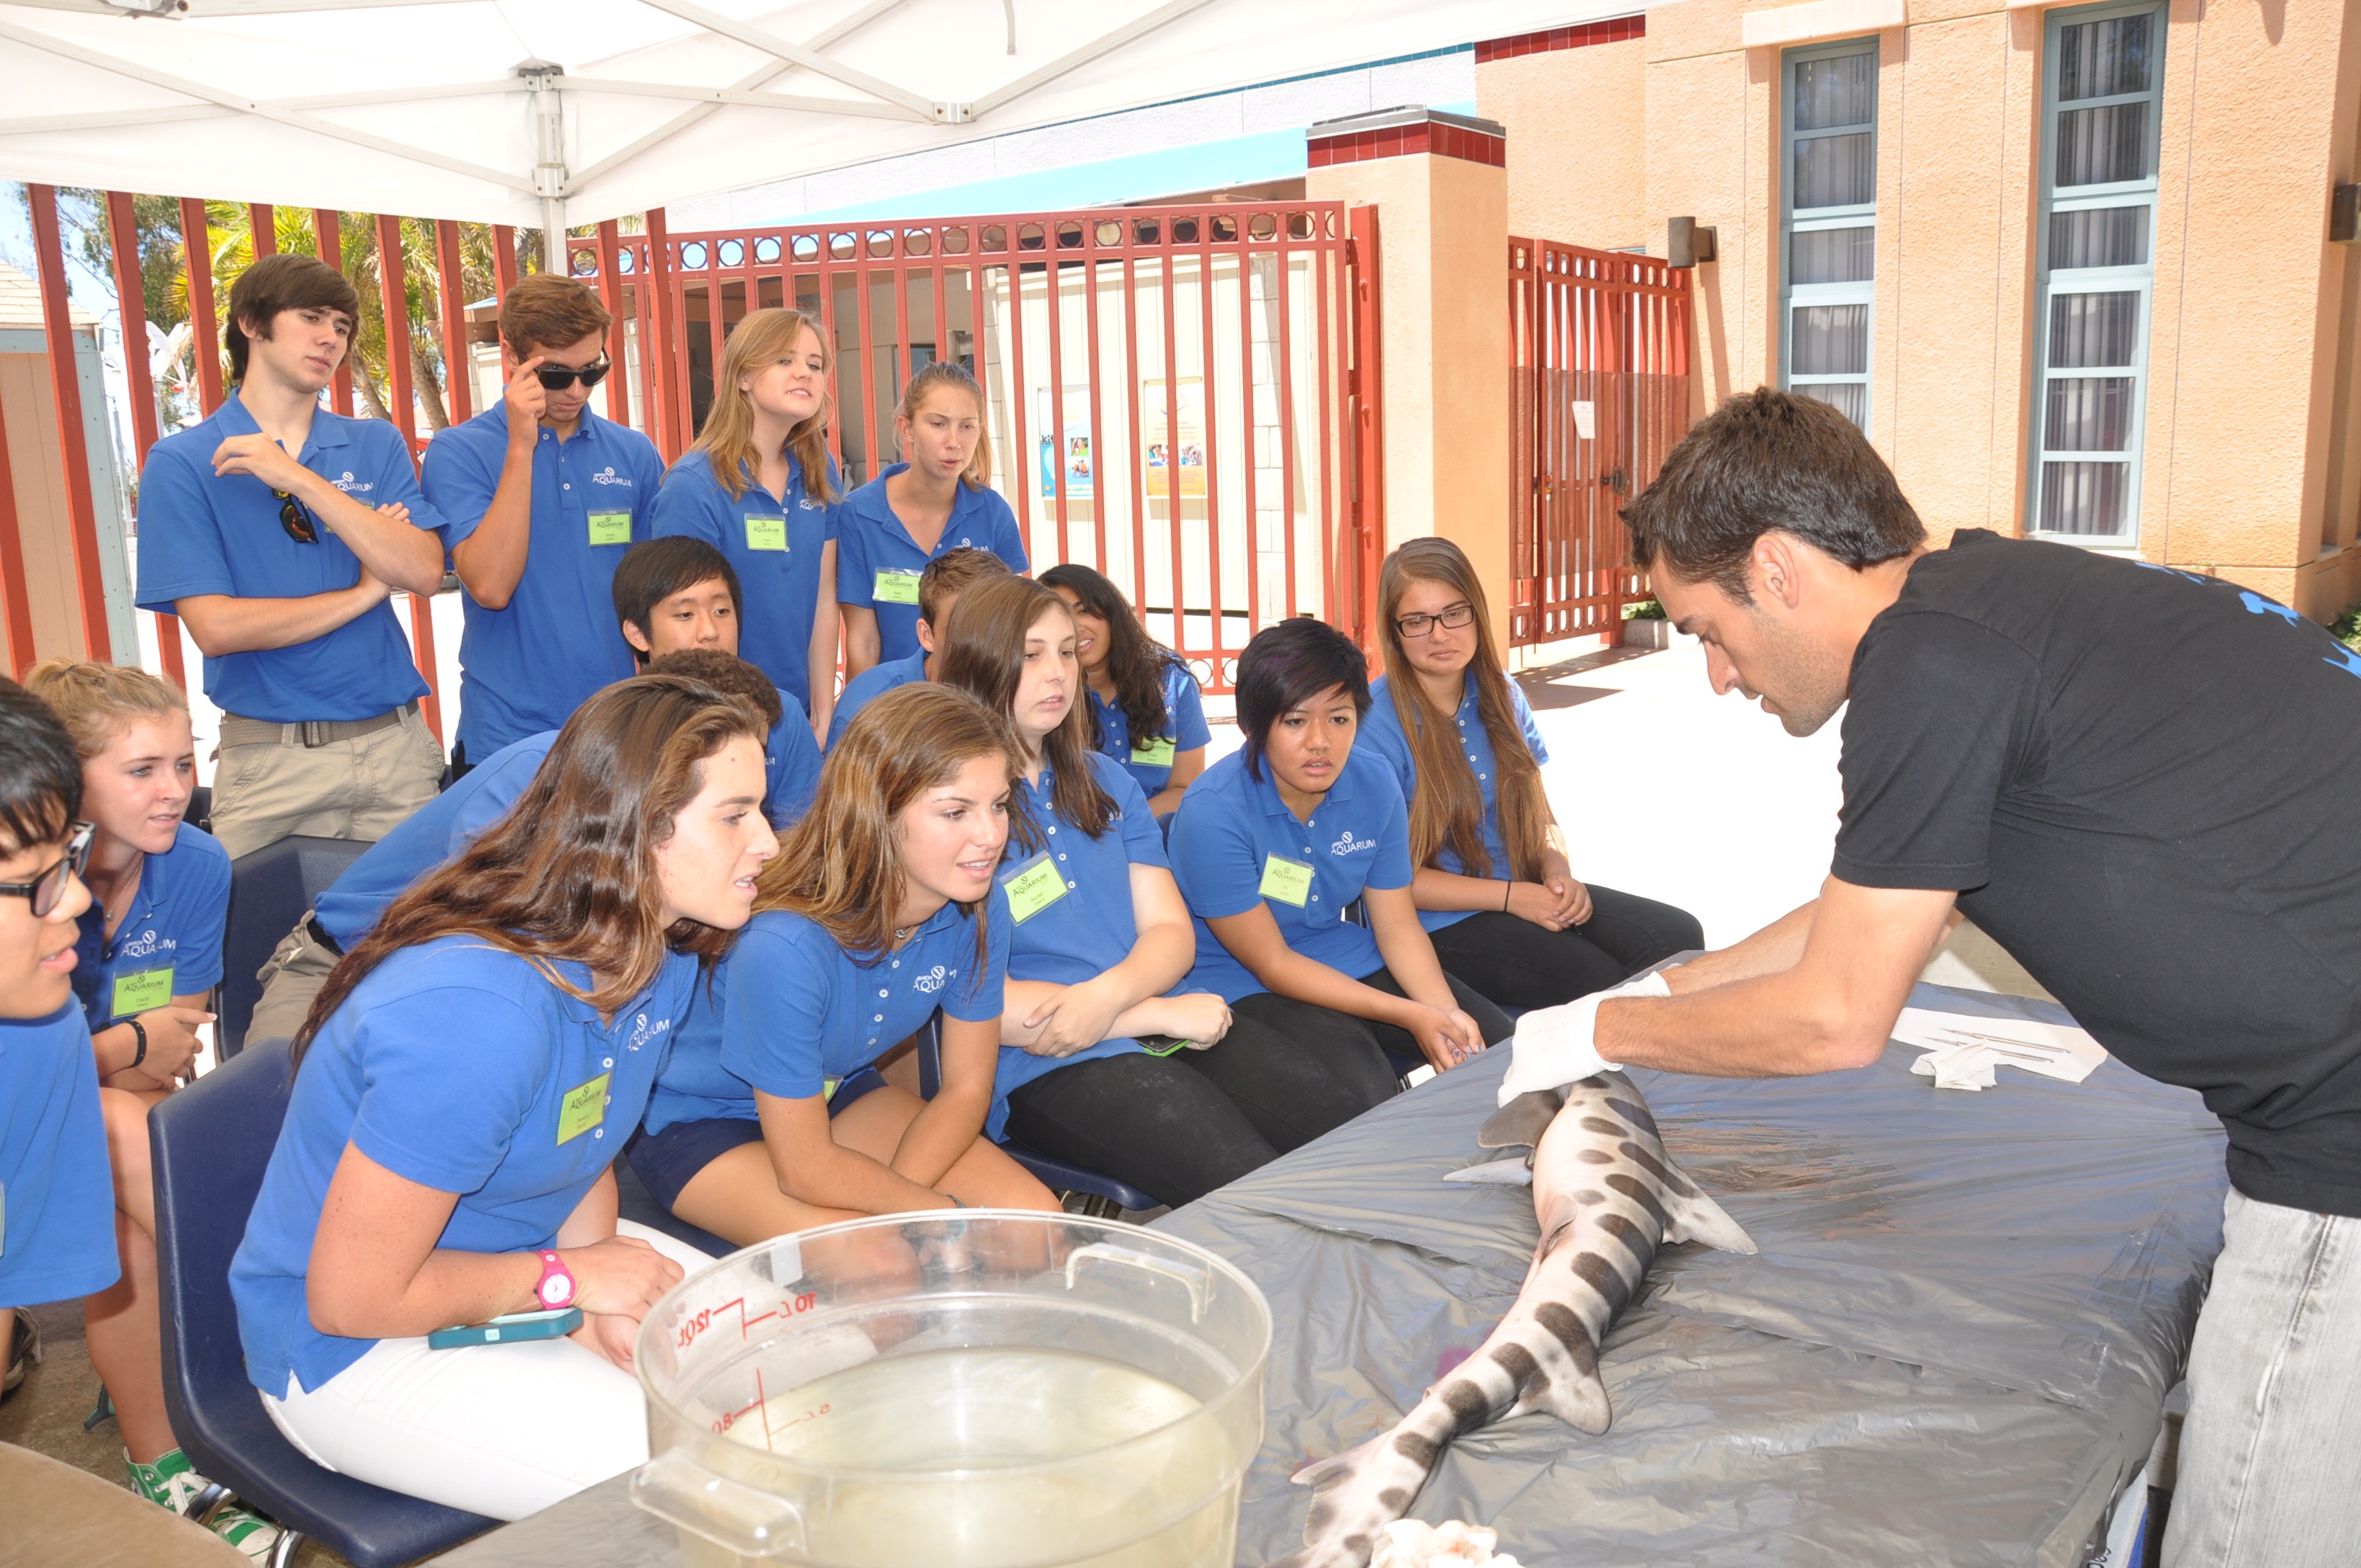 Youth Summer Interns learn about Leopard Shark anatomy and physiology from Scripps Institution of Oceanography 's Dr. Andy Nosal.